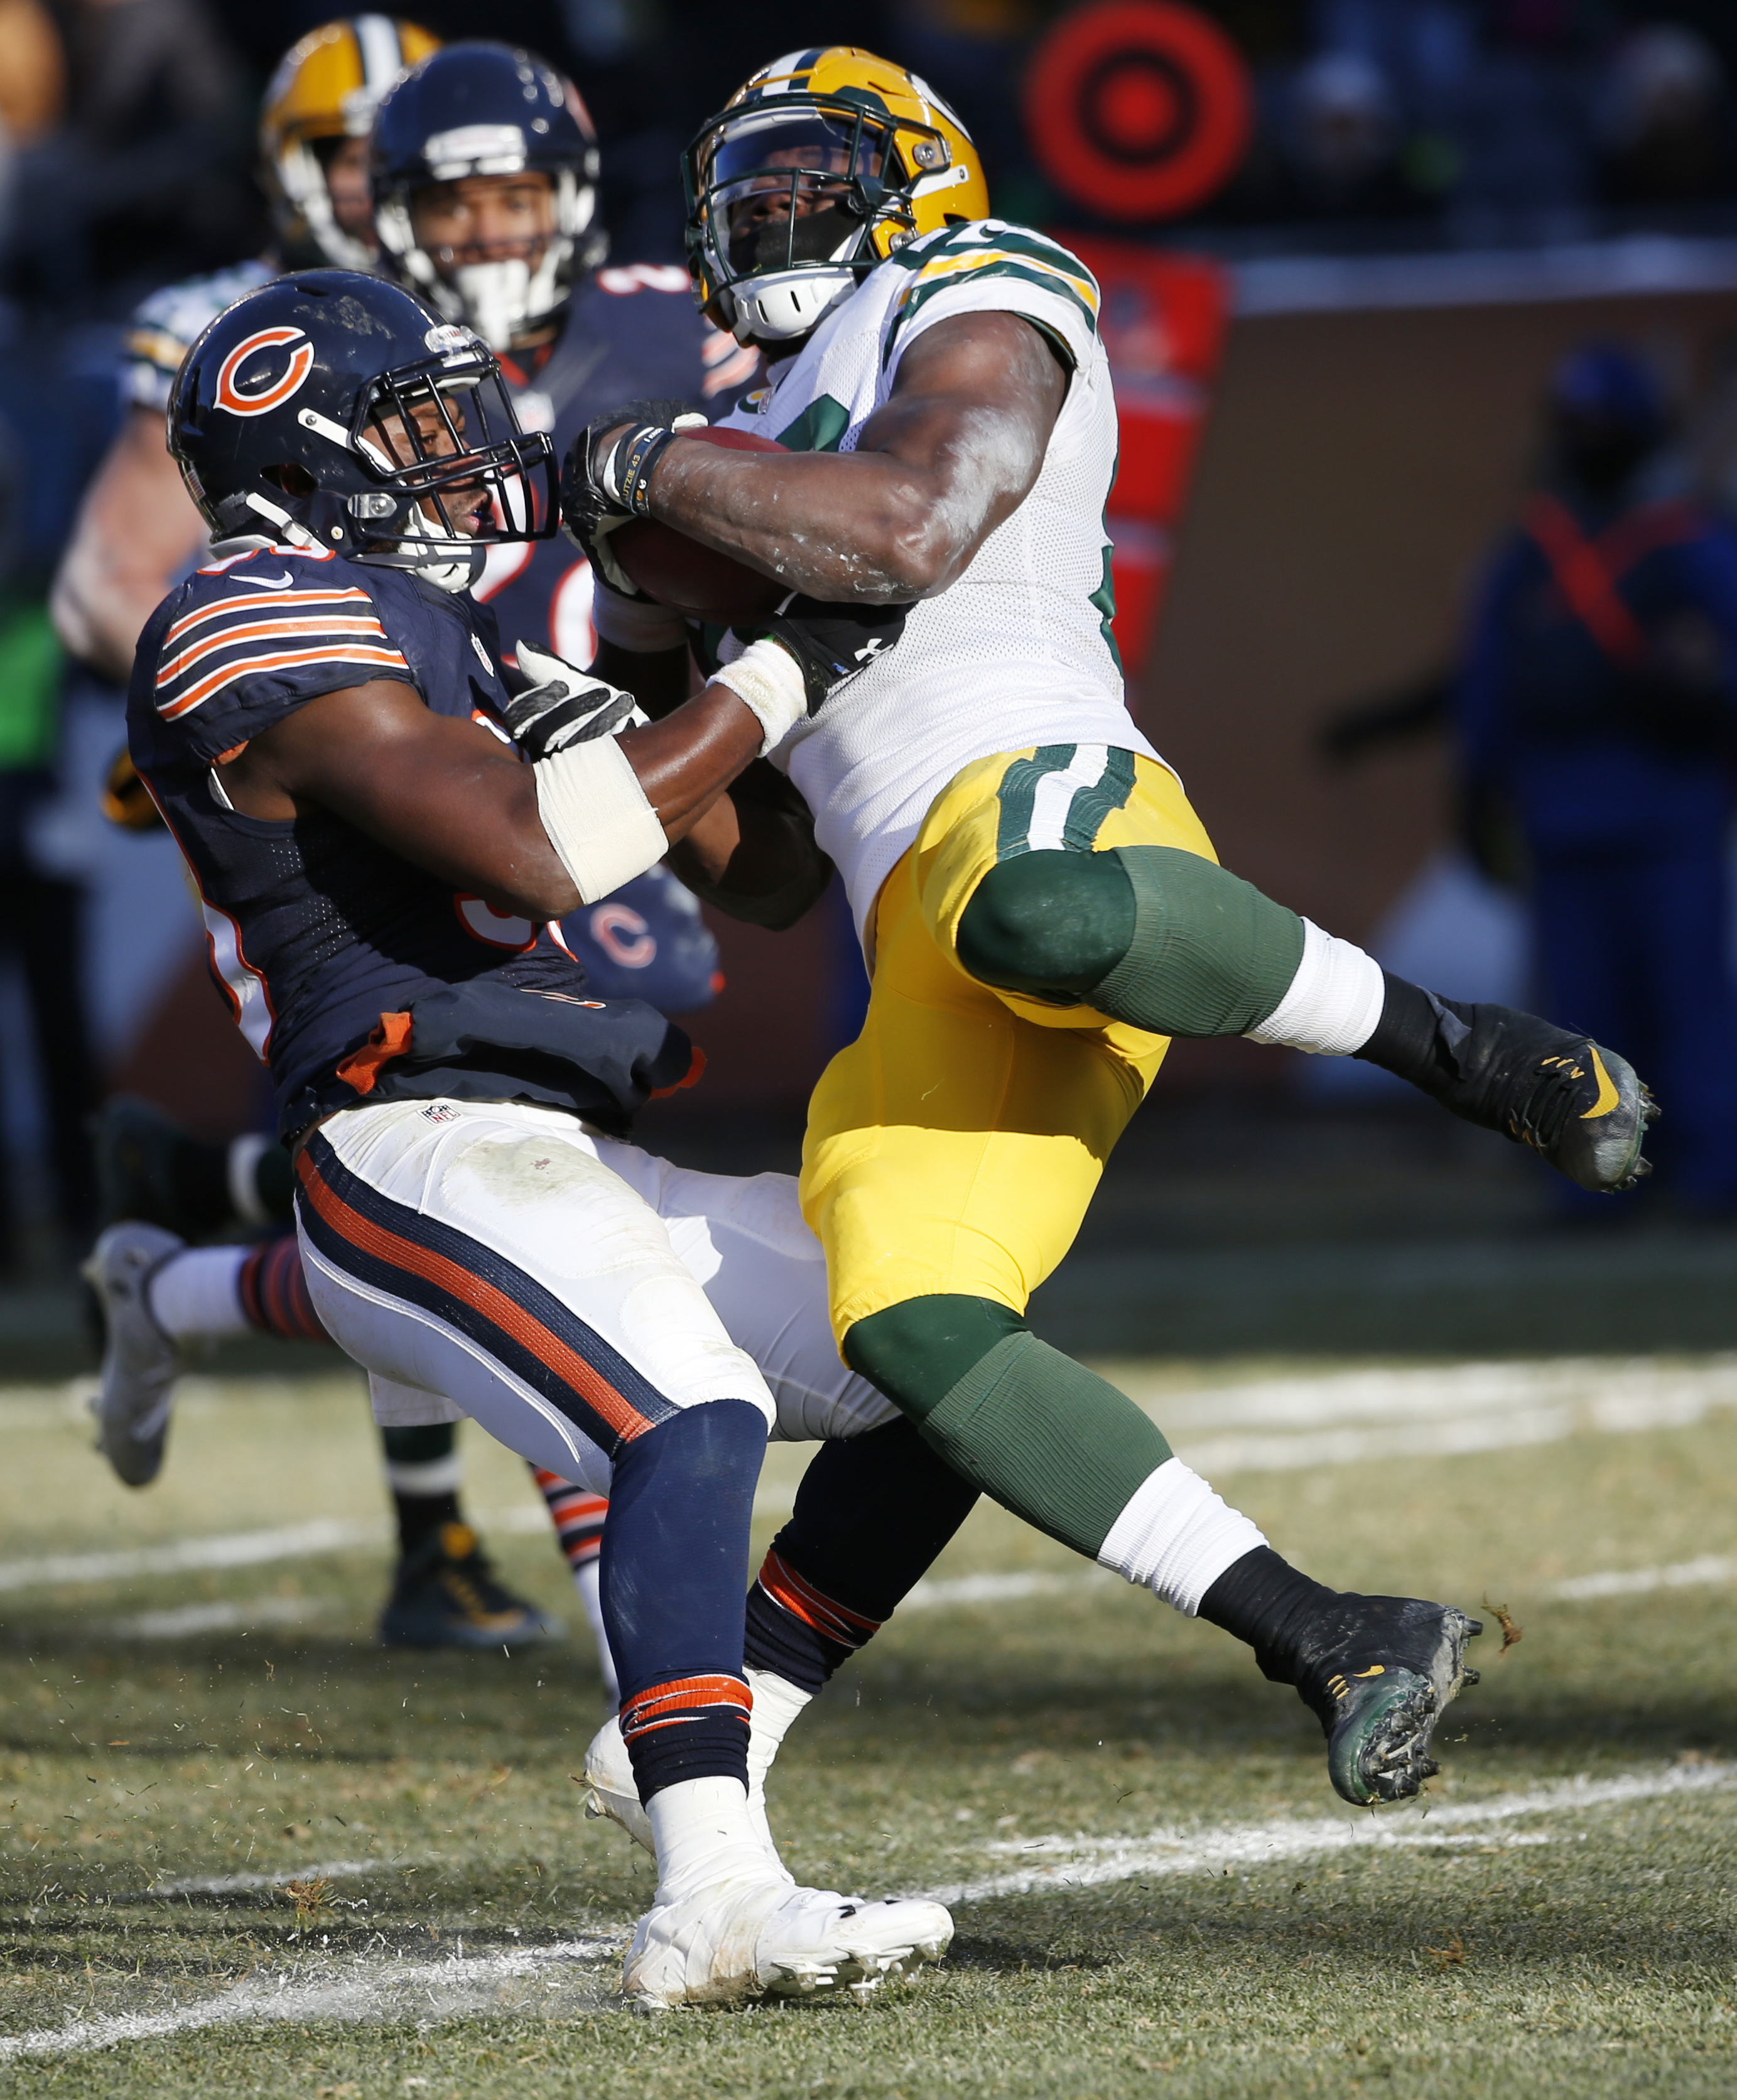 Green Bay Packers receiver Ty Montgomery, right, is tackled by Chicago Bears safety Adrian Amos during the second half of an NFL football game, Sunday, Dec. 18, 2016, in Chicago. (AP Photo/Nam Y. Huh)